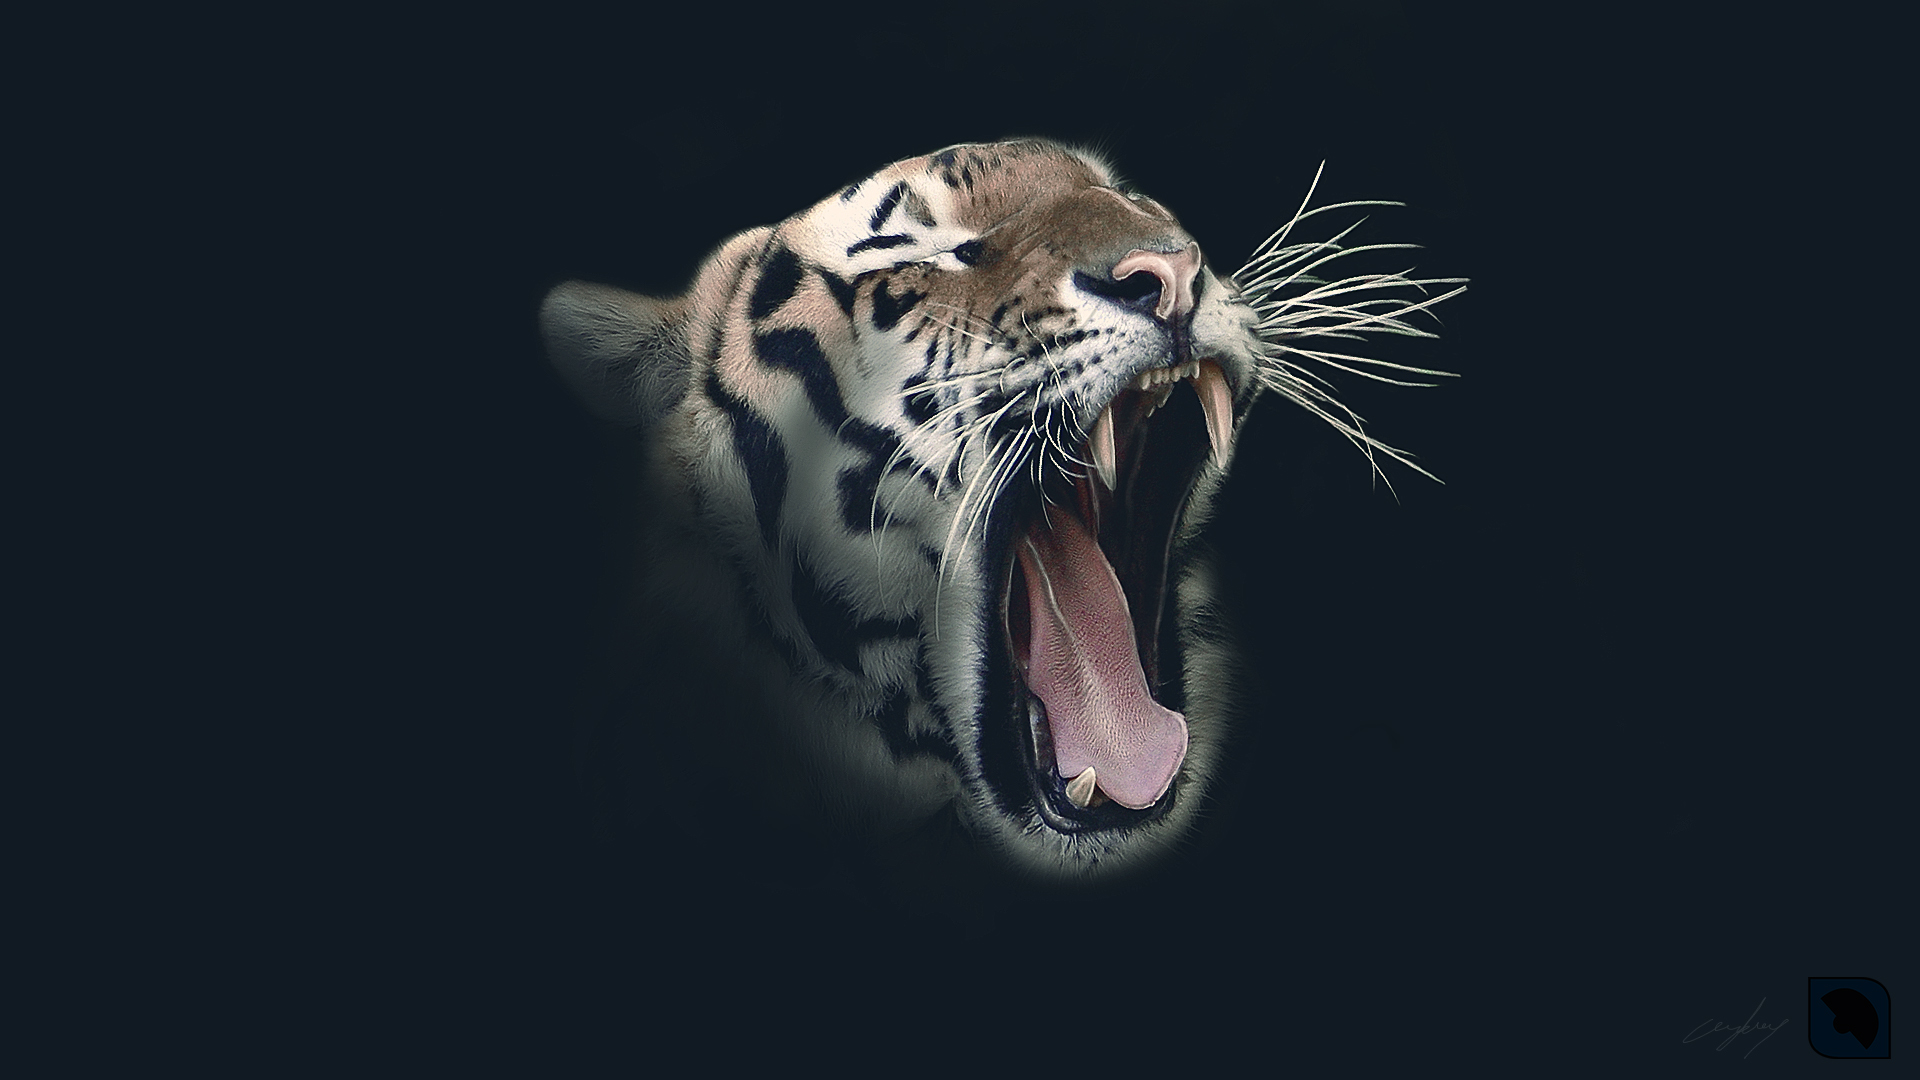 Tiger Wallpaper High Definition